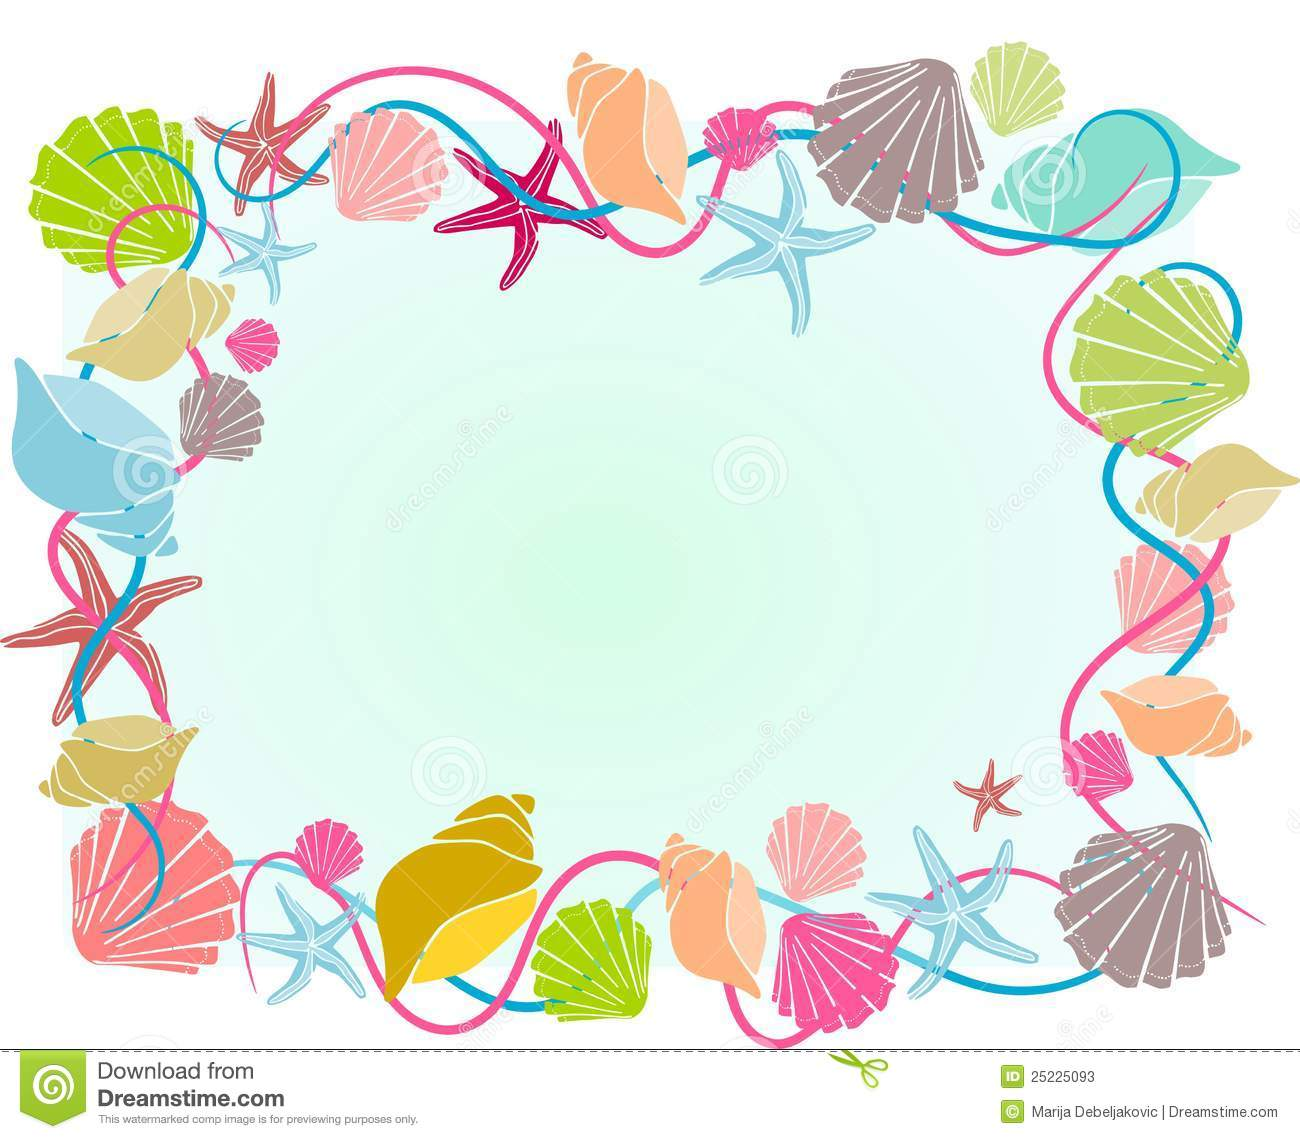 The best free Seashell clipart images. Download from 102.